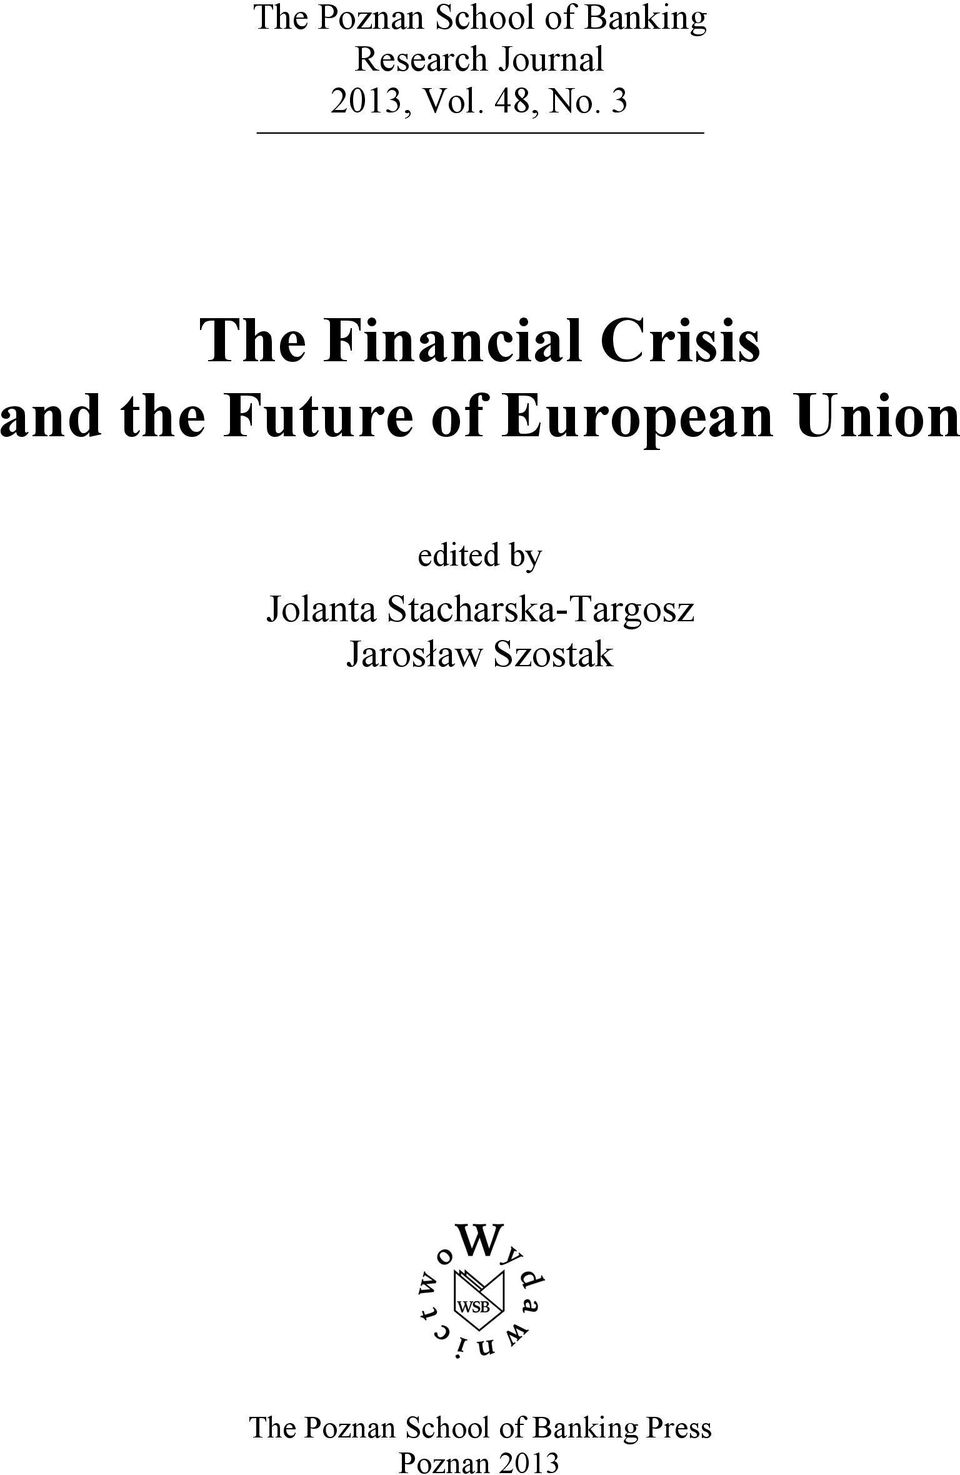 3 The Financial Crisis and the Future of European Union